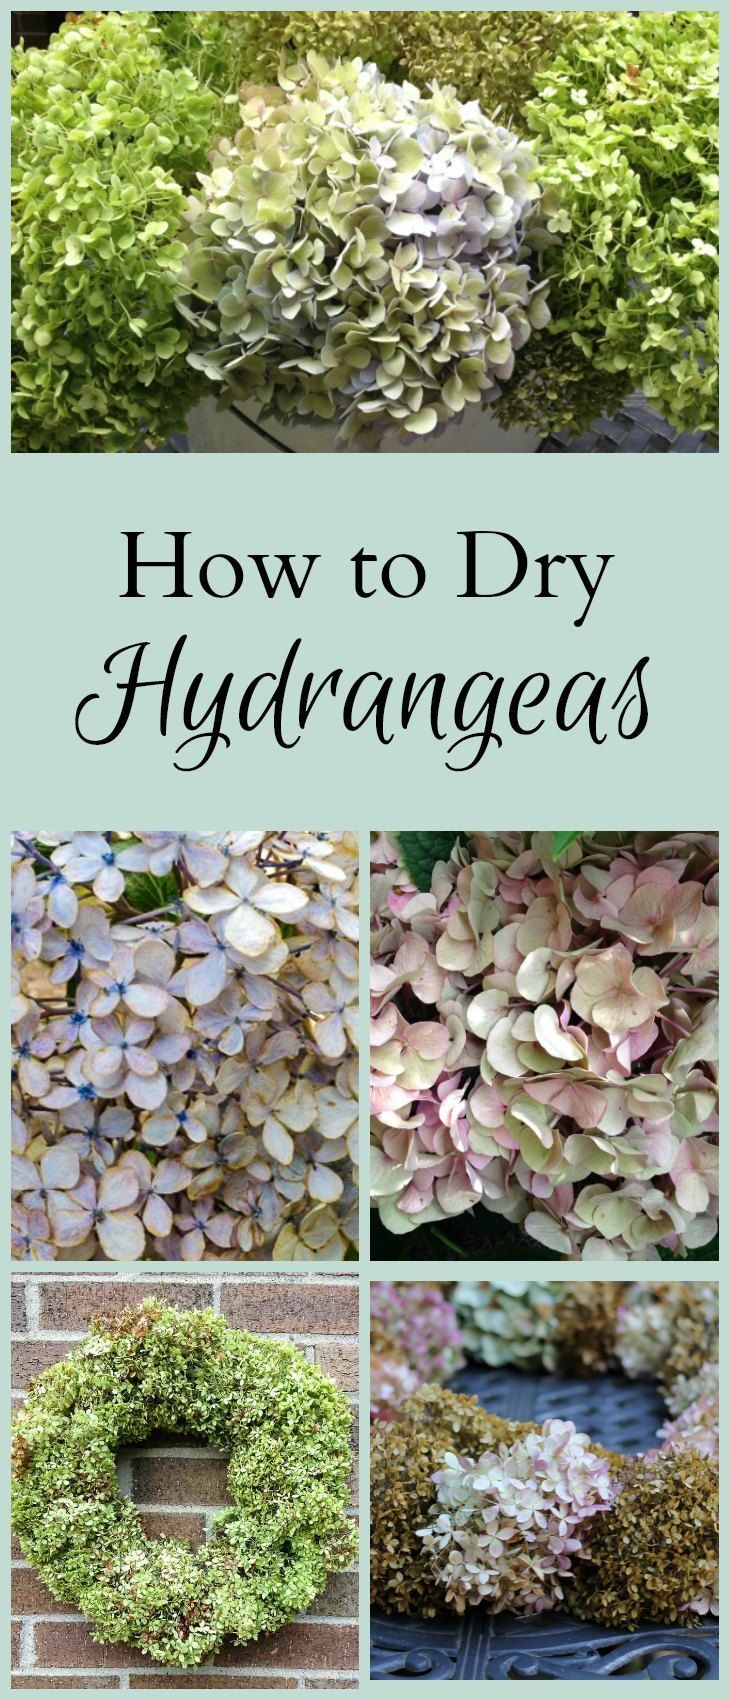 Drying hydrangeas is an easy technique to master, and a great way to preserve the beautiful blooms for use in your home decor.